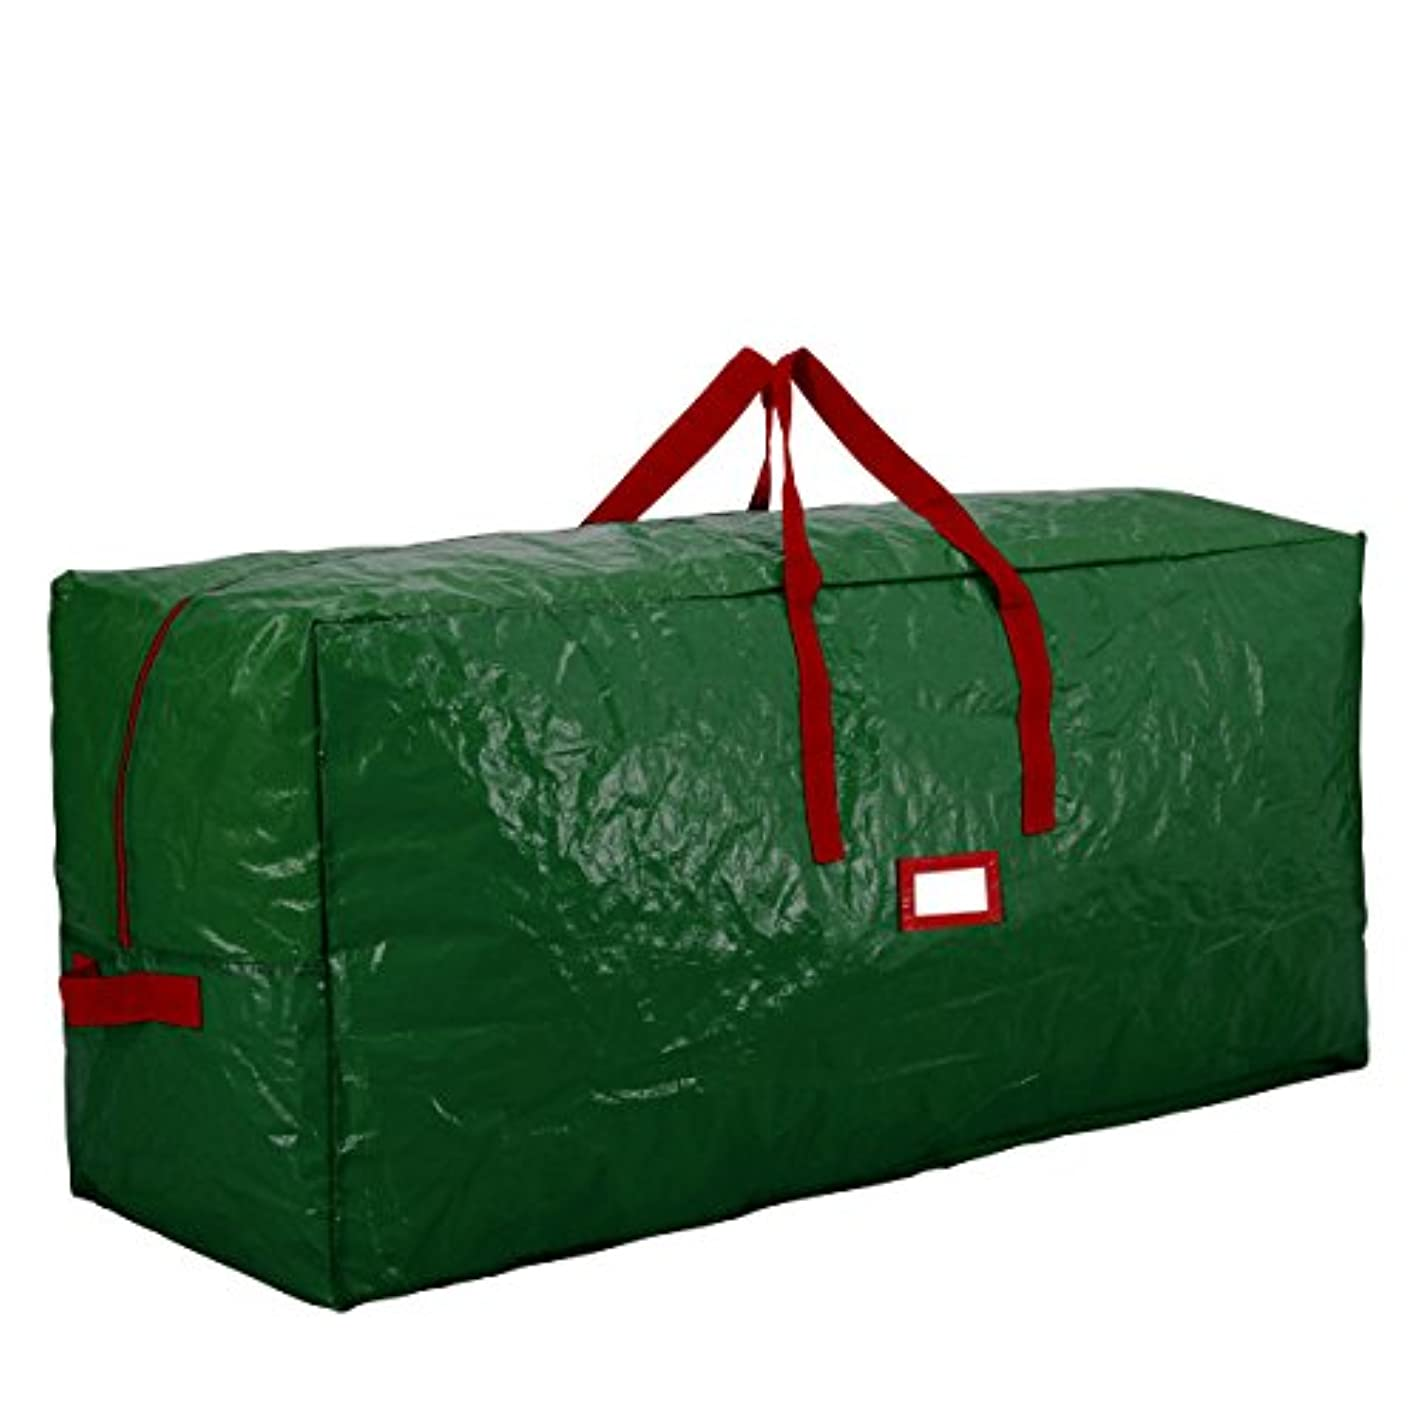 Premium Green Extra Large Holiday Christmas Tree Storage Bag-Fits Trees Up to 9 Feet Tall-Tear Resistant Zippered Bag with Reinforced Handles -65 x 15 x 30 (Green)